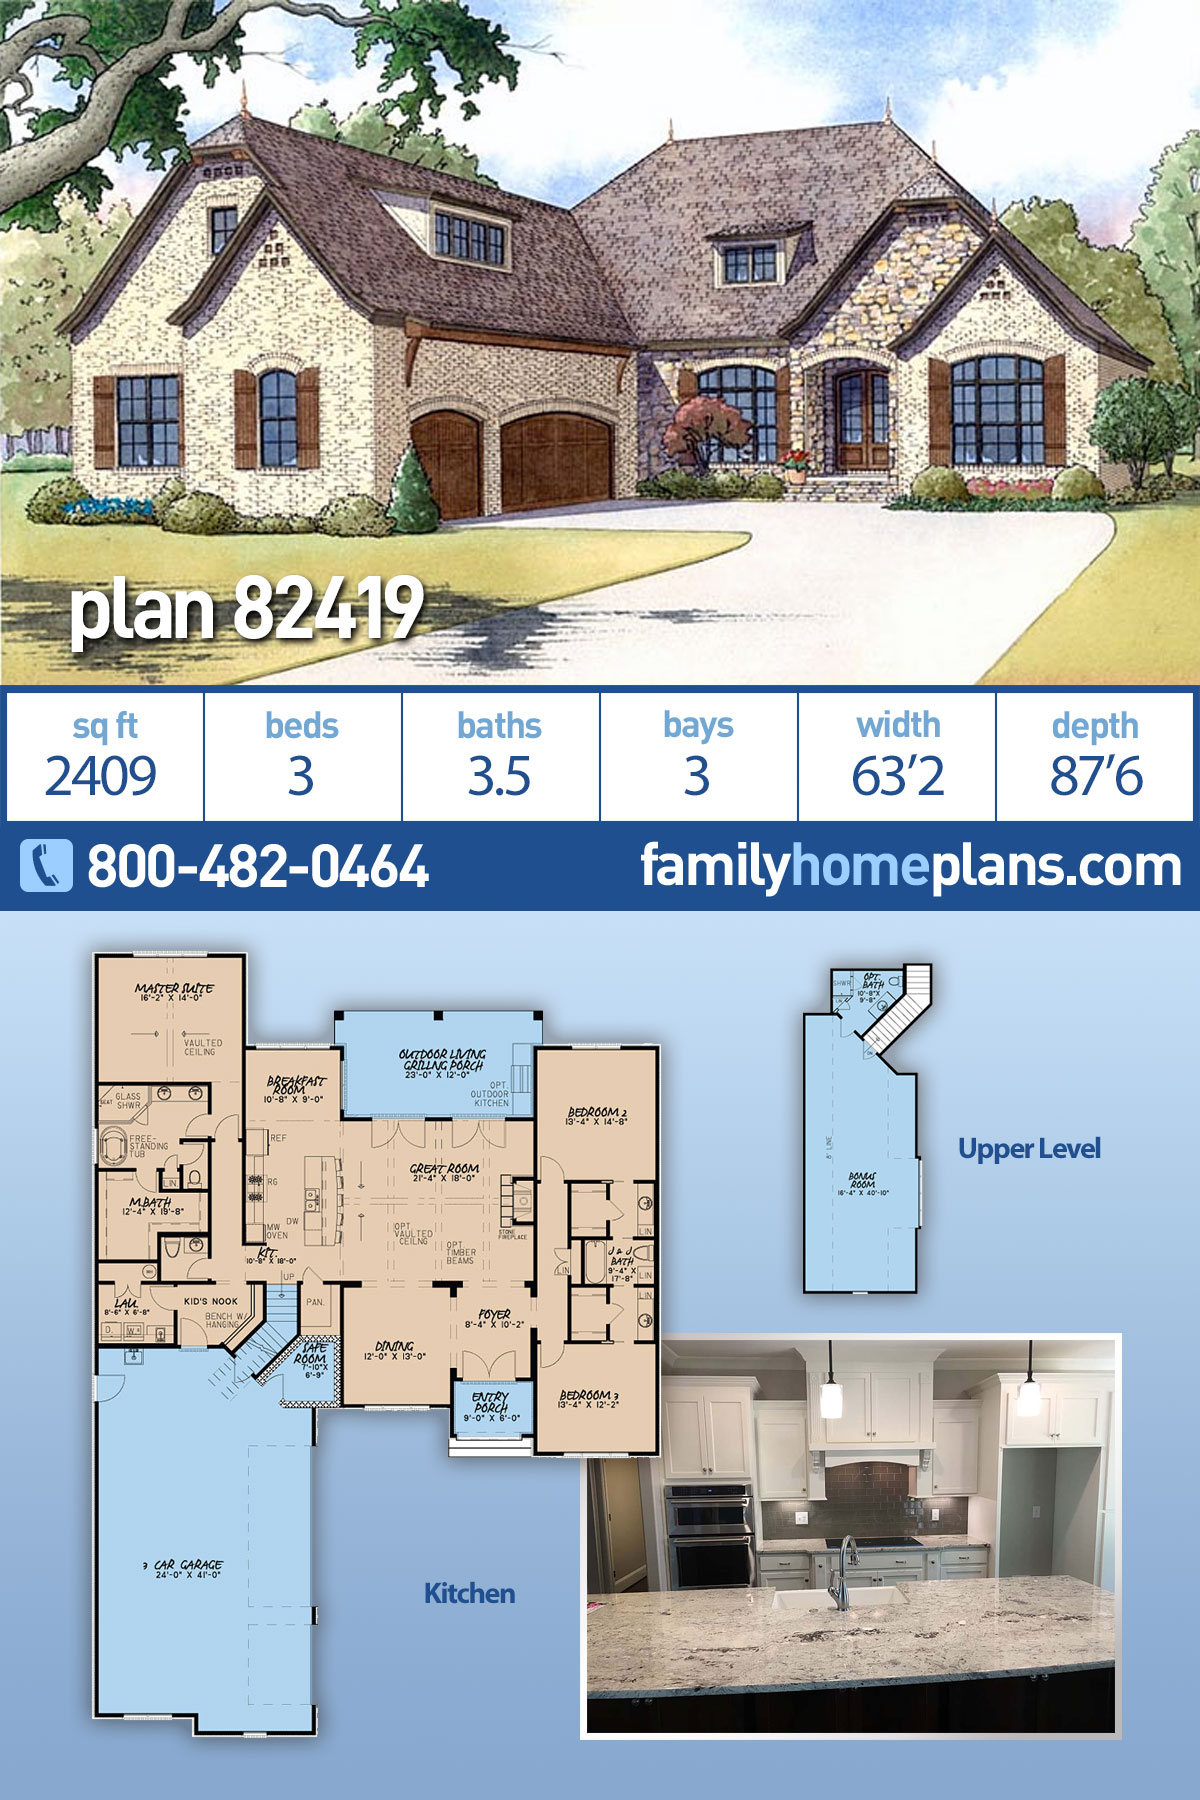 European , French Country House Plan 82419 with 3 Beds, 4 Baths, 3 Car Garage